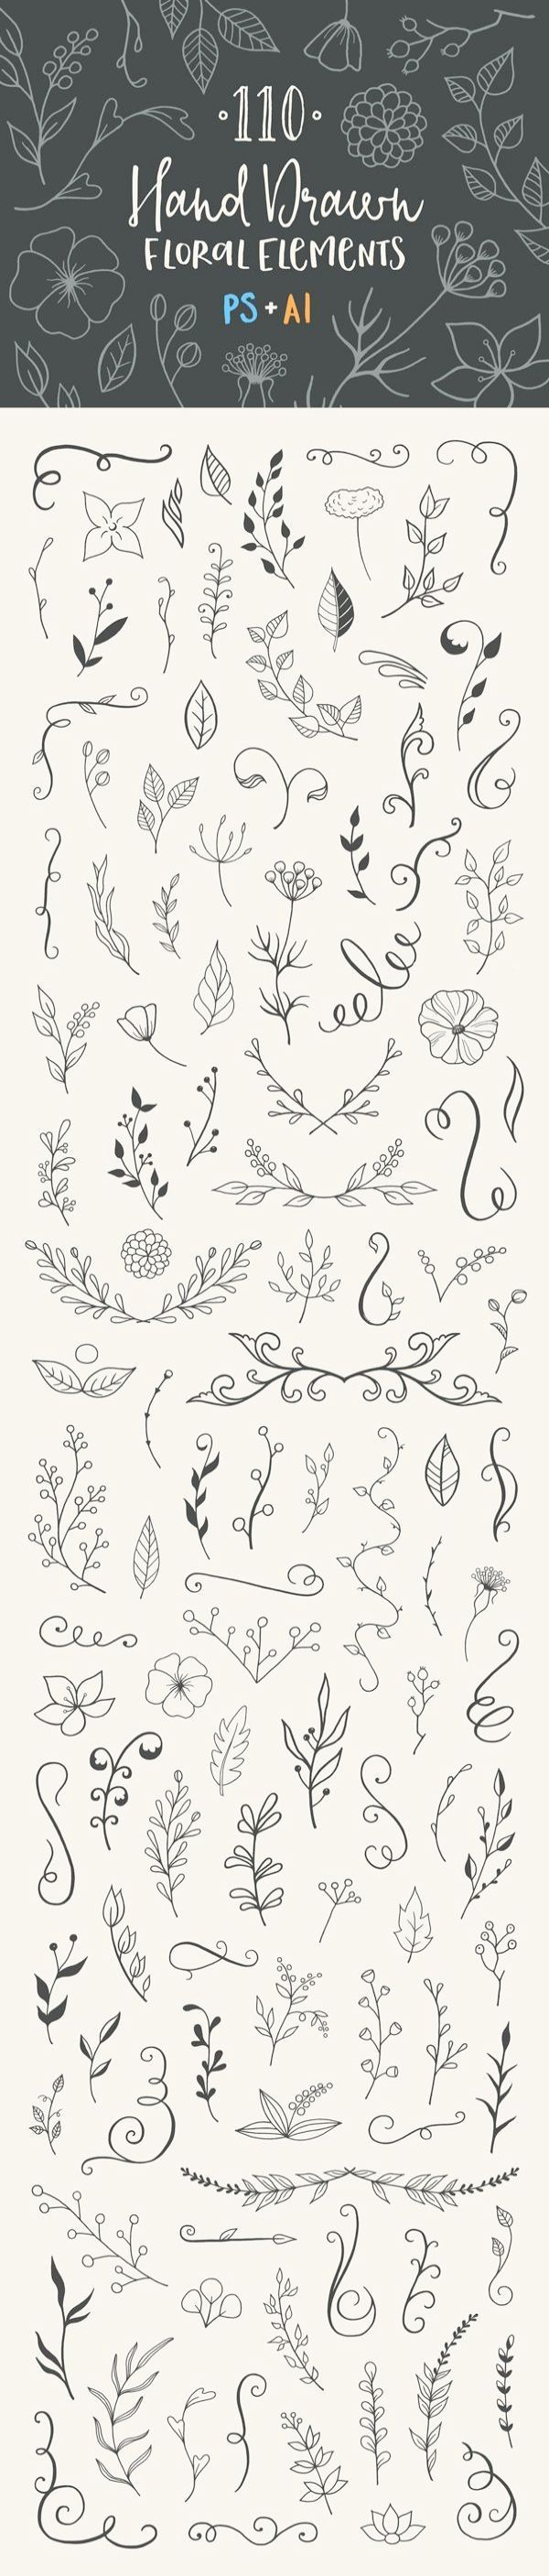 Embroidery patterns easy embroidery styles for ladies diy